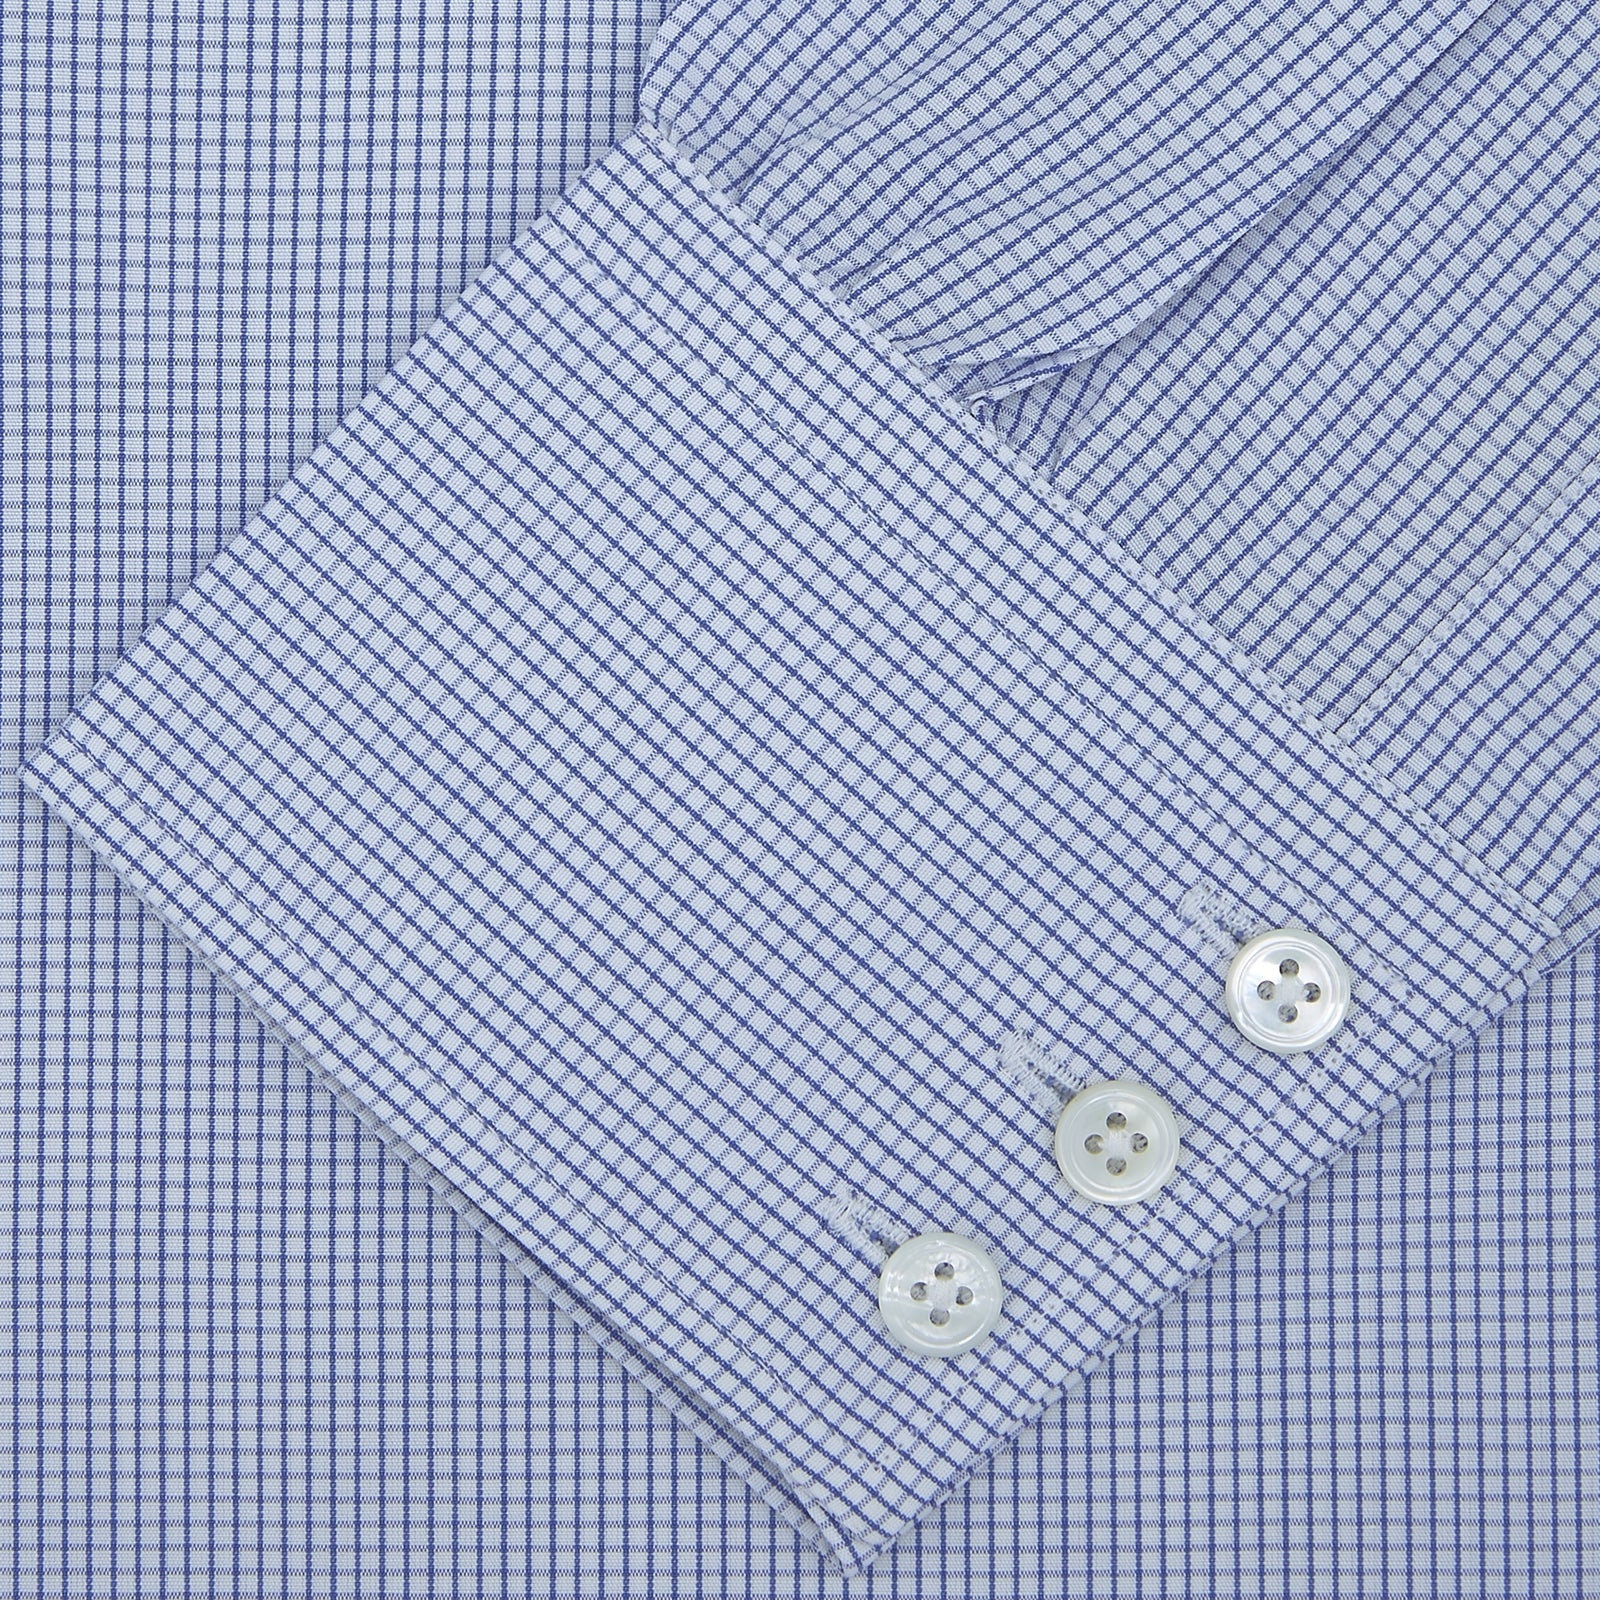 Blue Grid Check Shirt with Regent Collar and 3-Button Cuffs